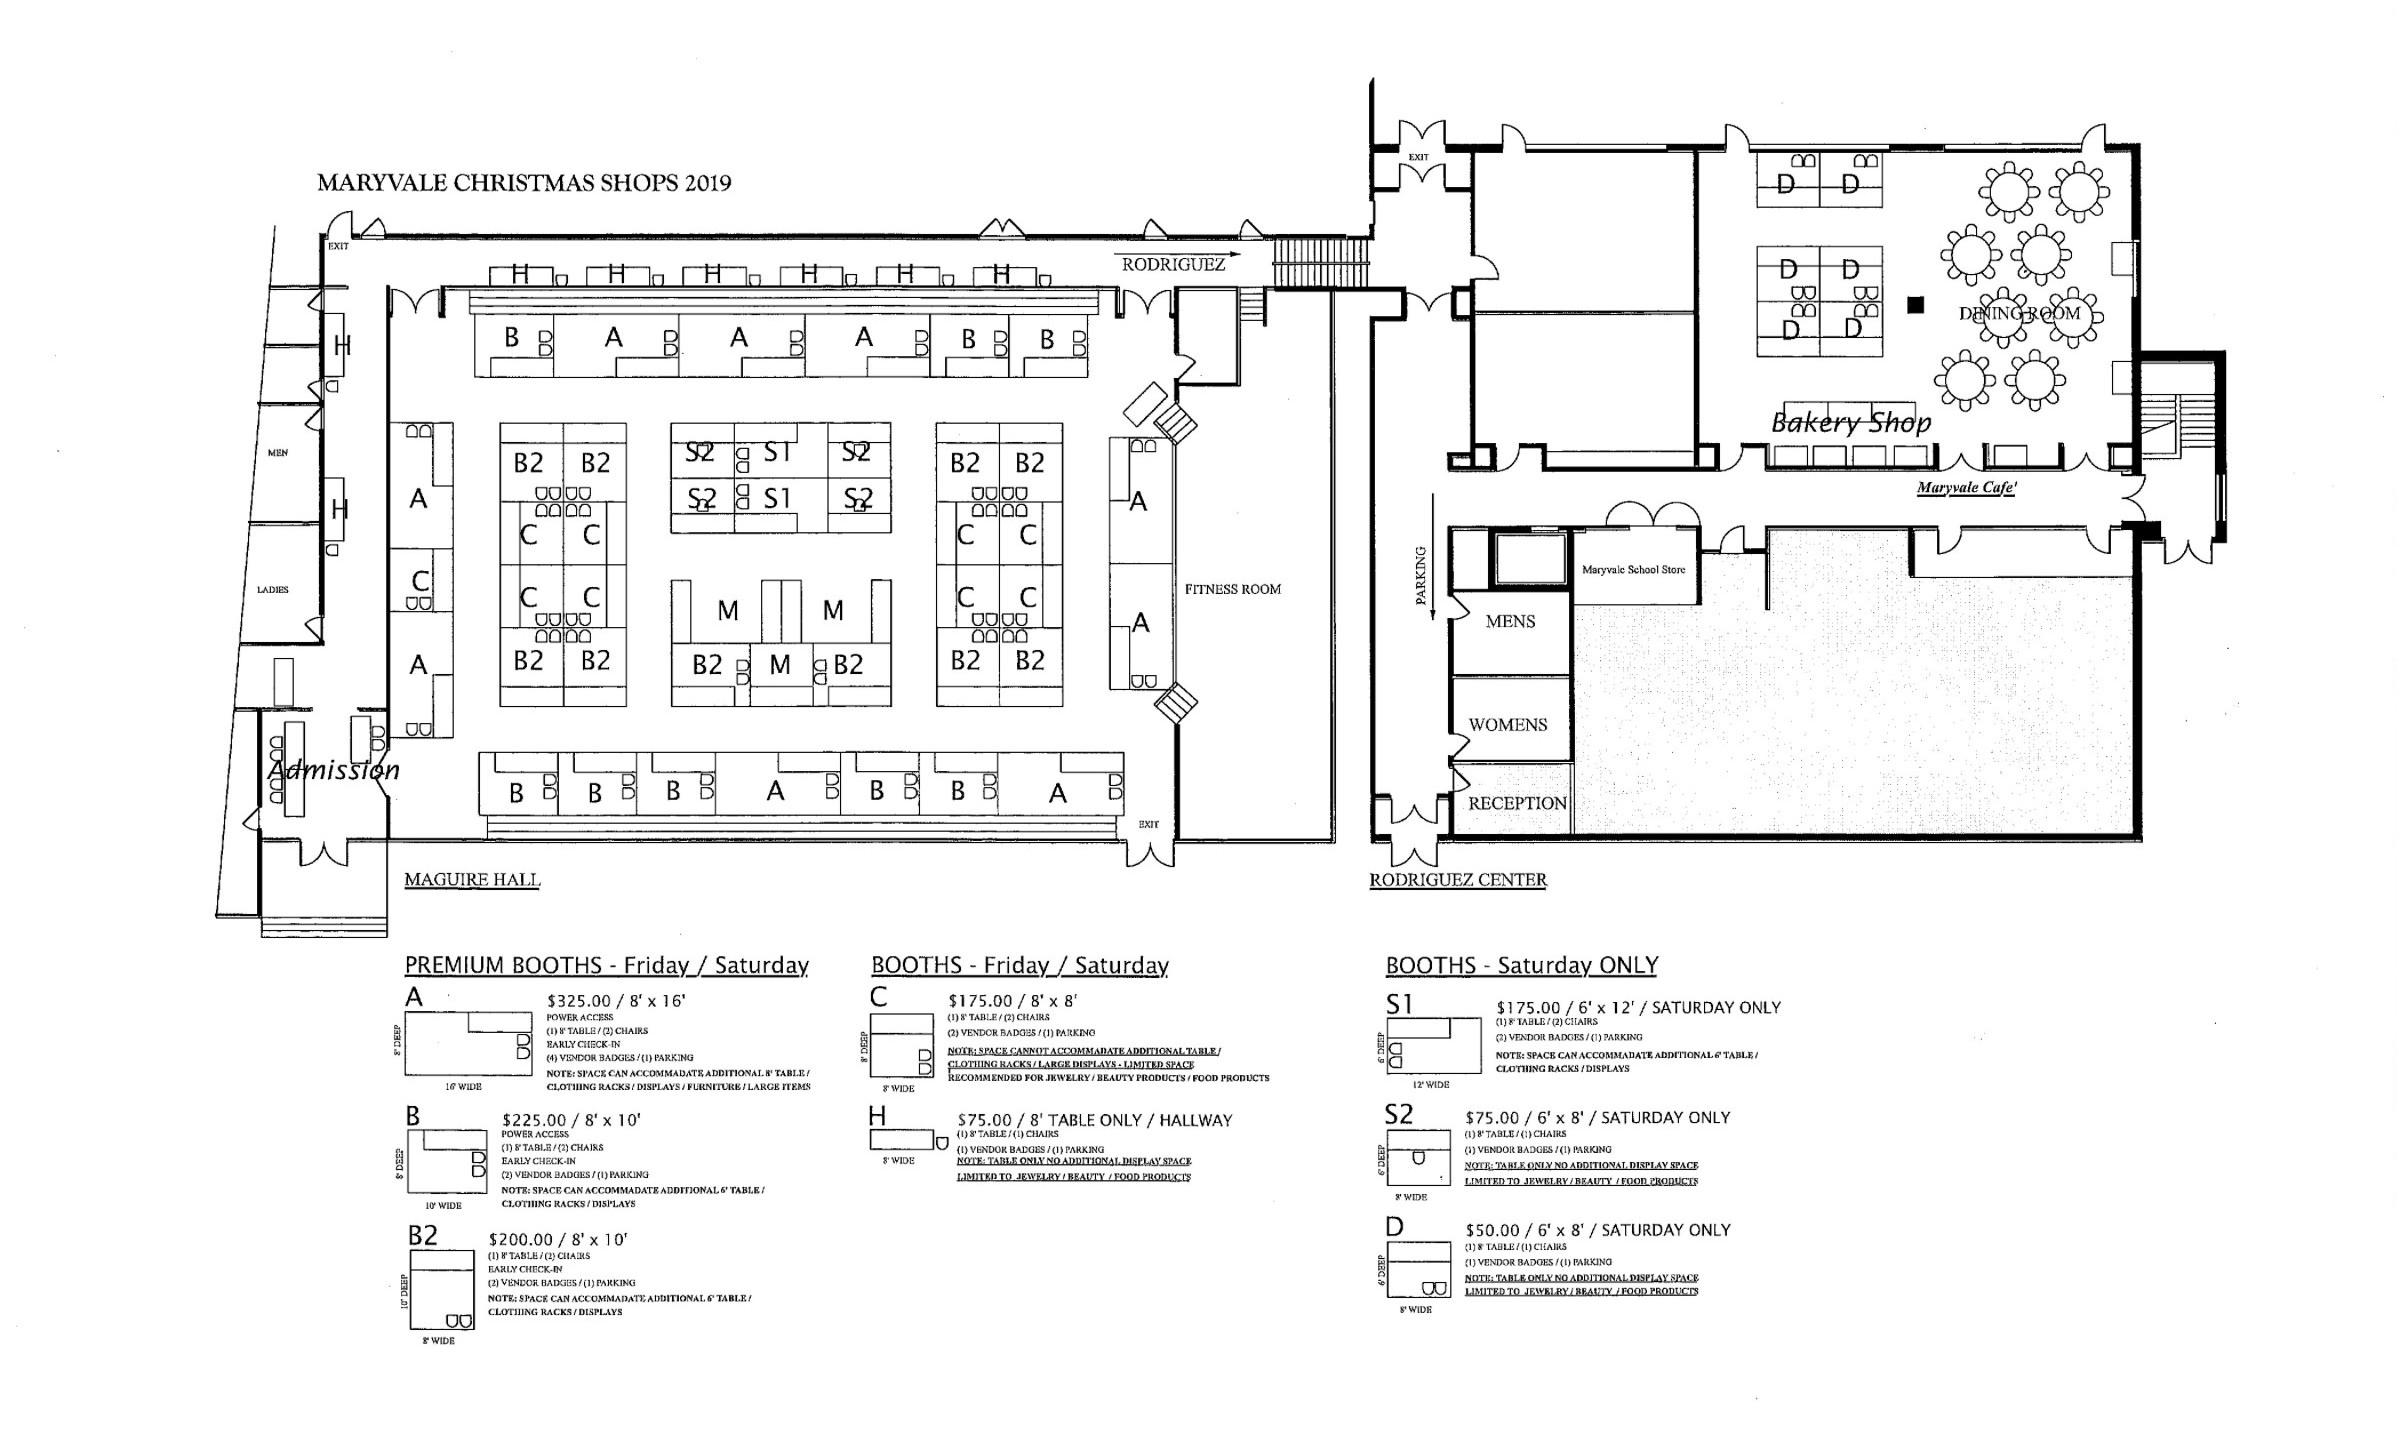 Maryvale Christmas Shops Schematic